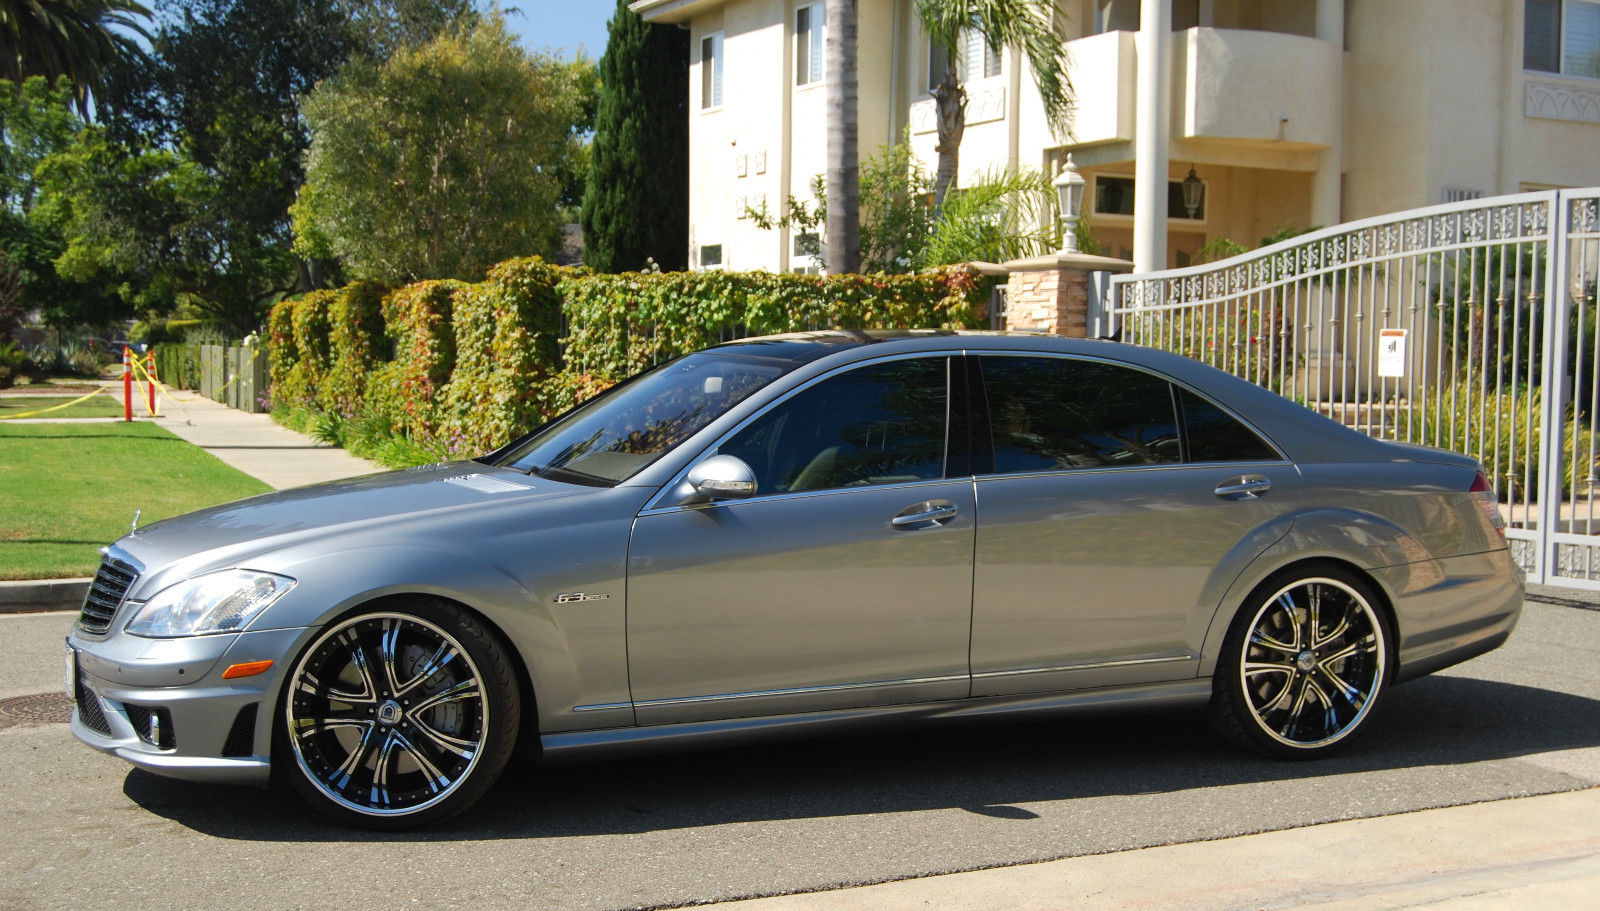 Mercedes benz w221 s63 amg on 22 asanti wheels benztuning for Mercedes benz 17 amg rims